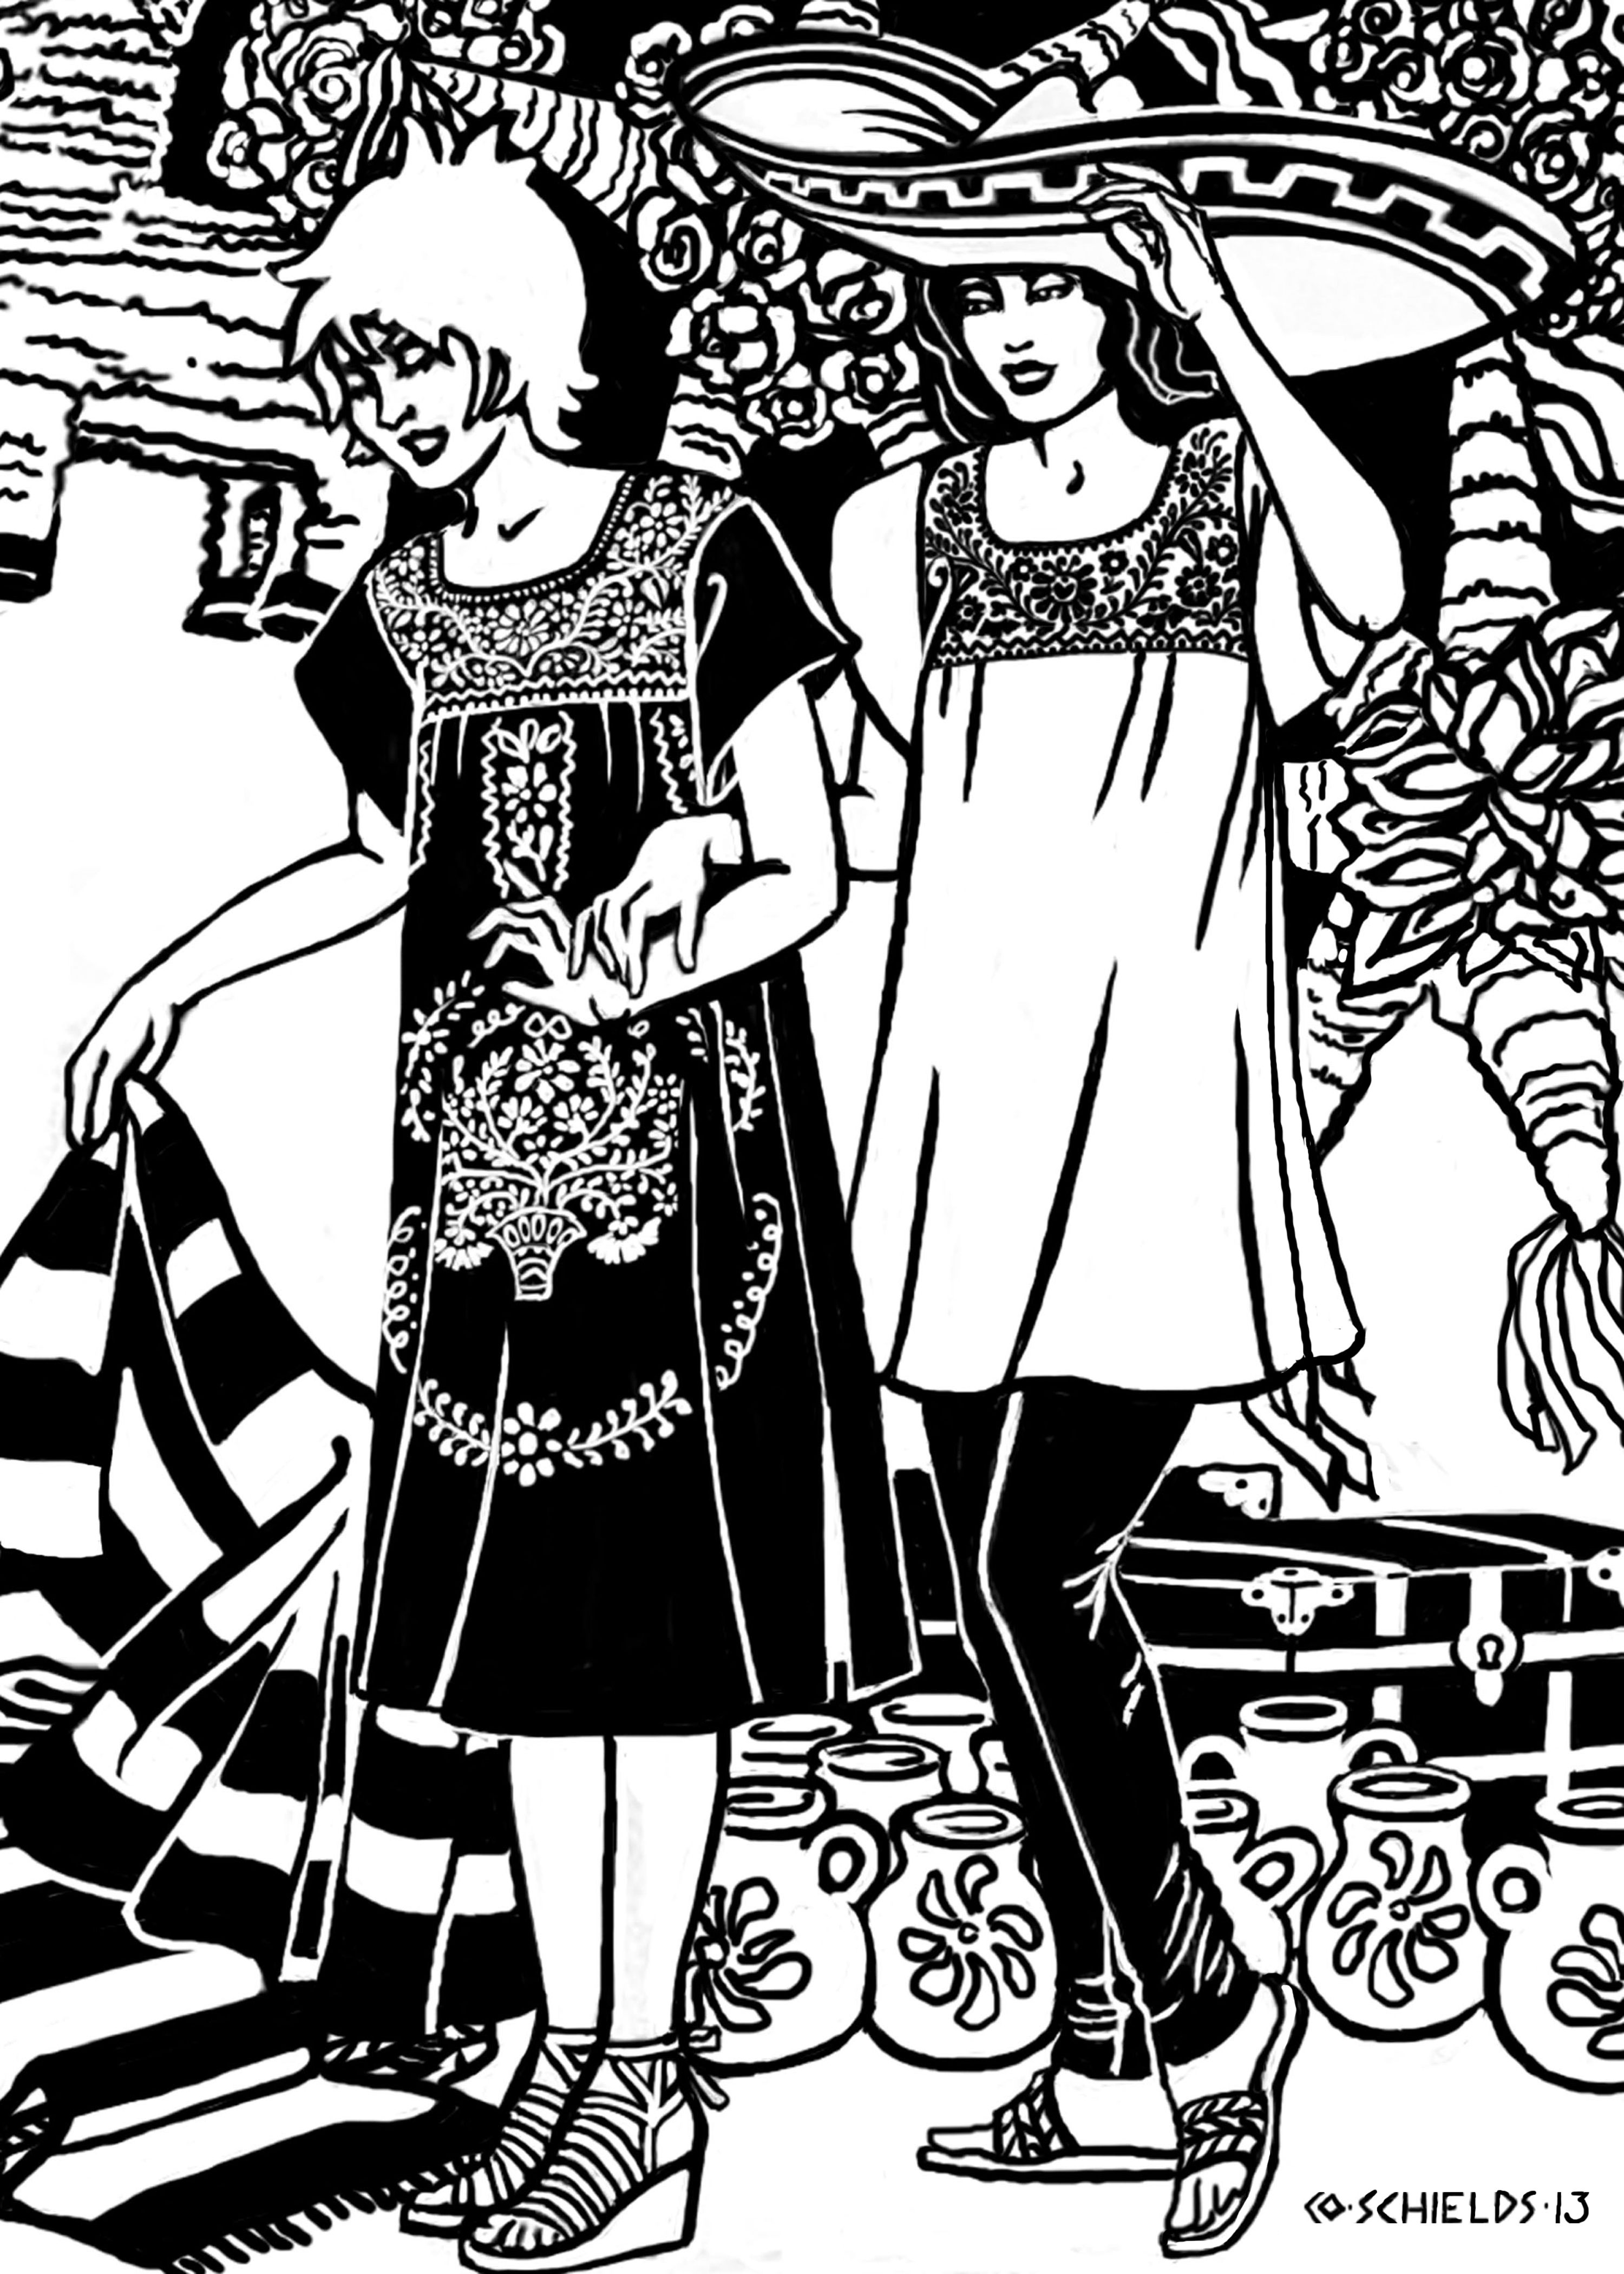 142 old mexico dress adult coloring pages pinterest mexico Vintage Gunne Sax Jessica McClintock new pattern 142 old mexico dress is an easy sew pattern for the traditional mexican peasant dress or blouse it has just four pattern pieces short sleeves